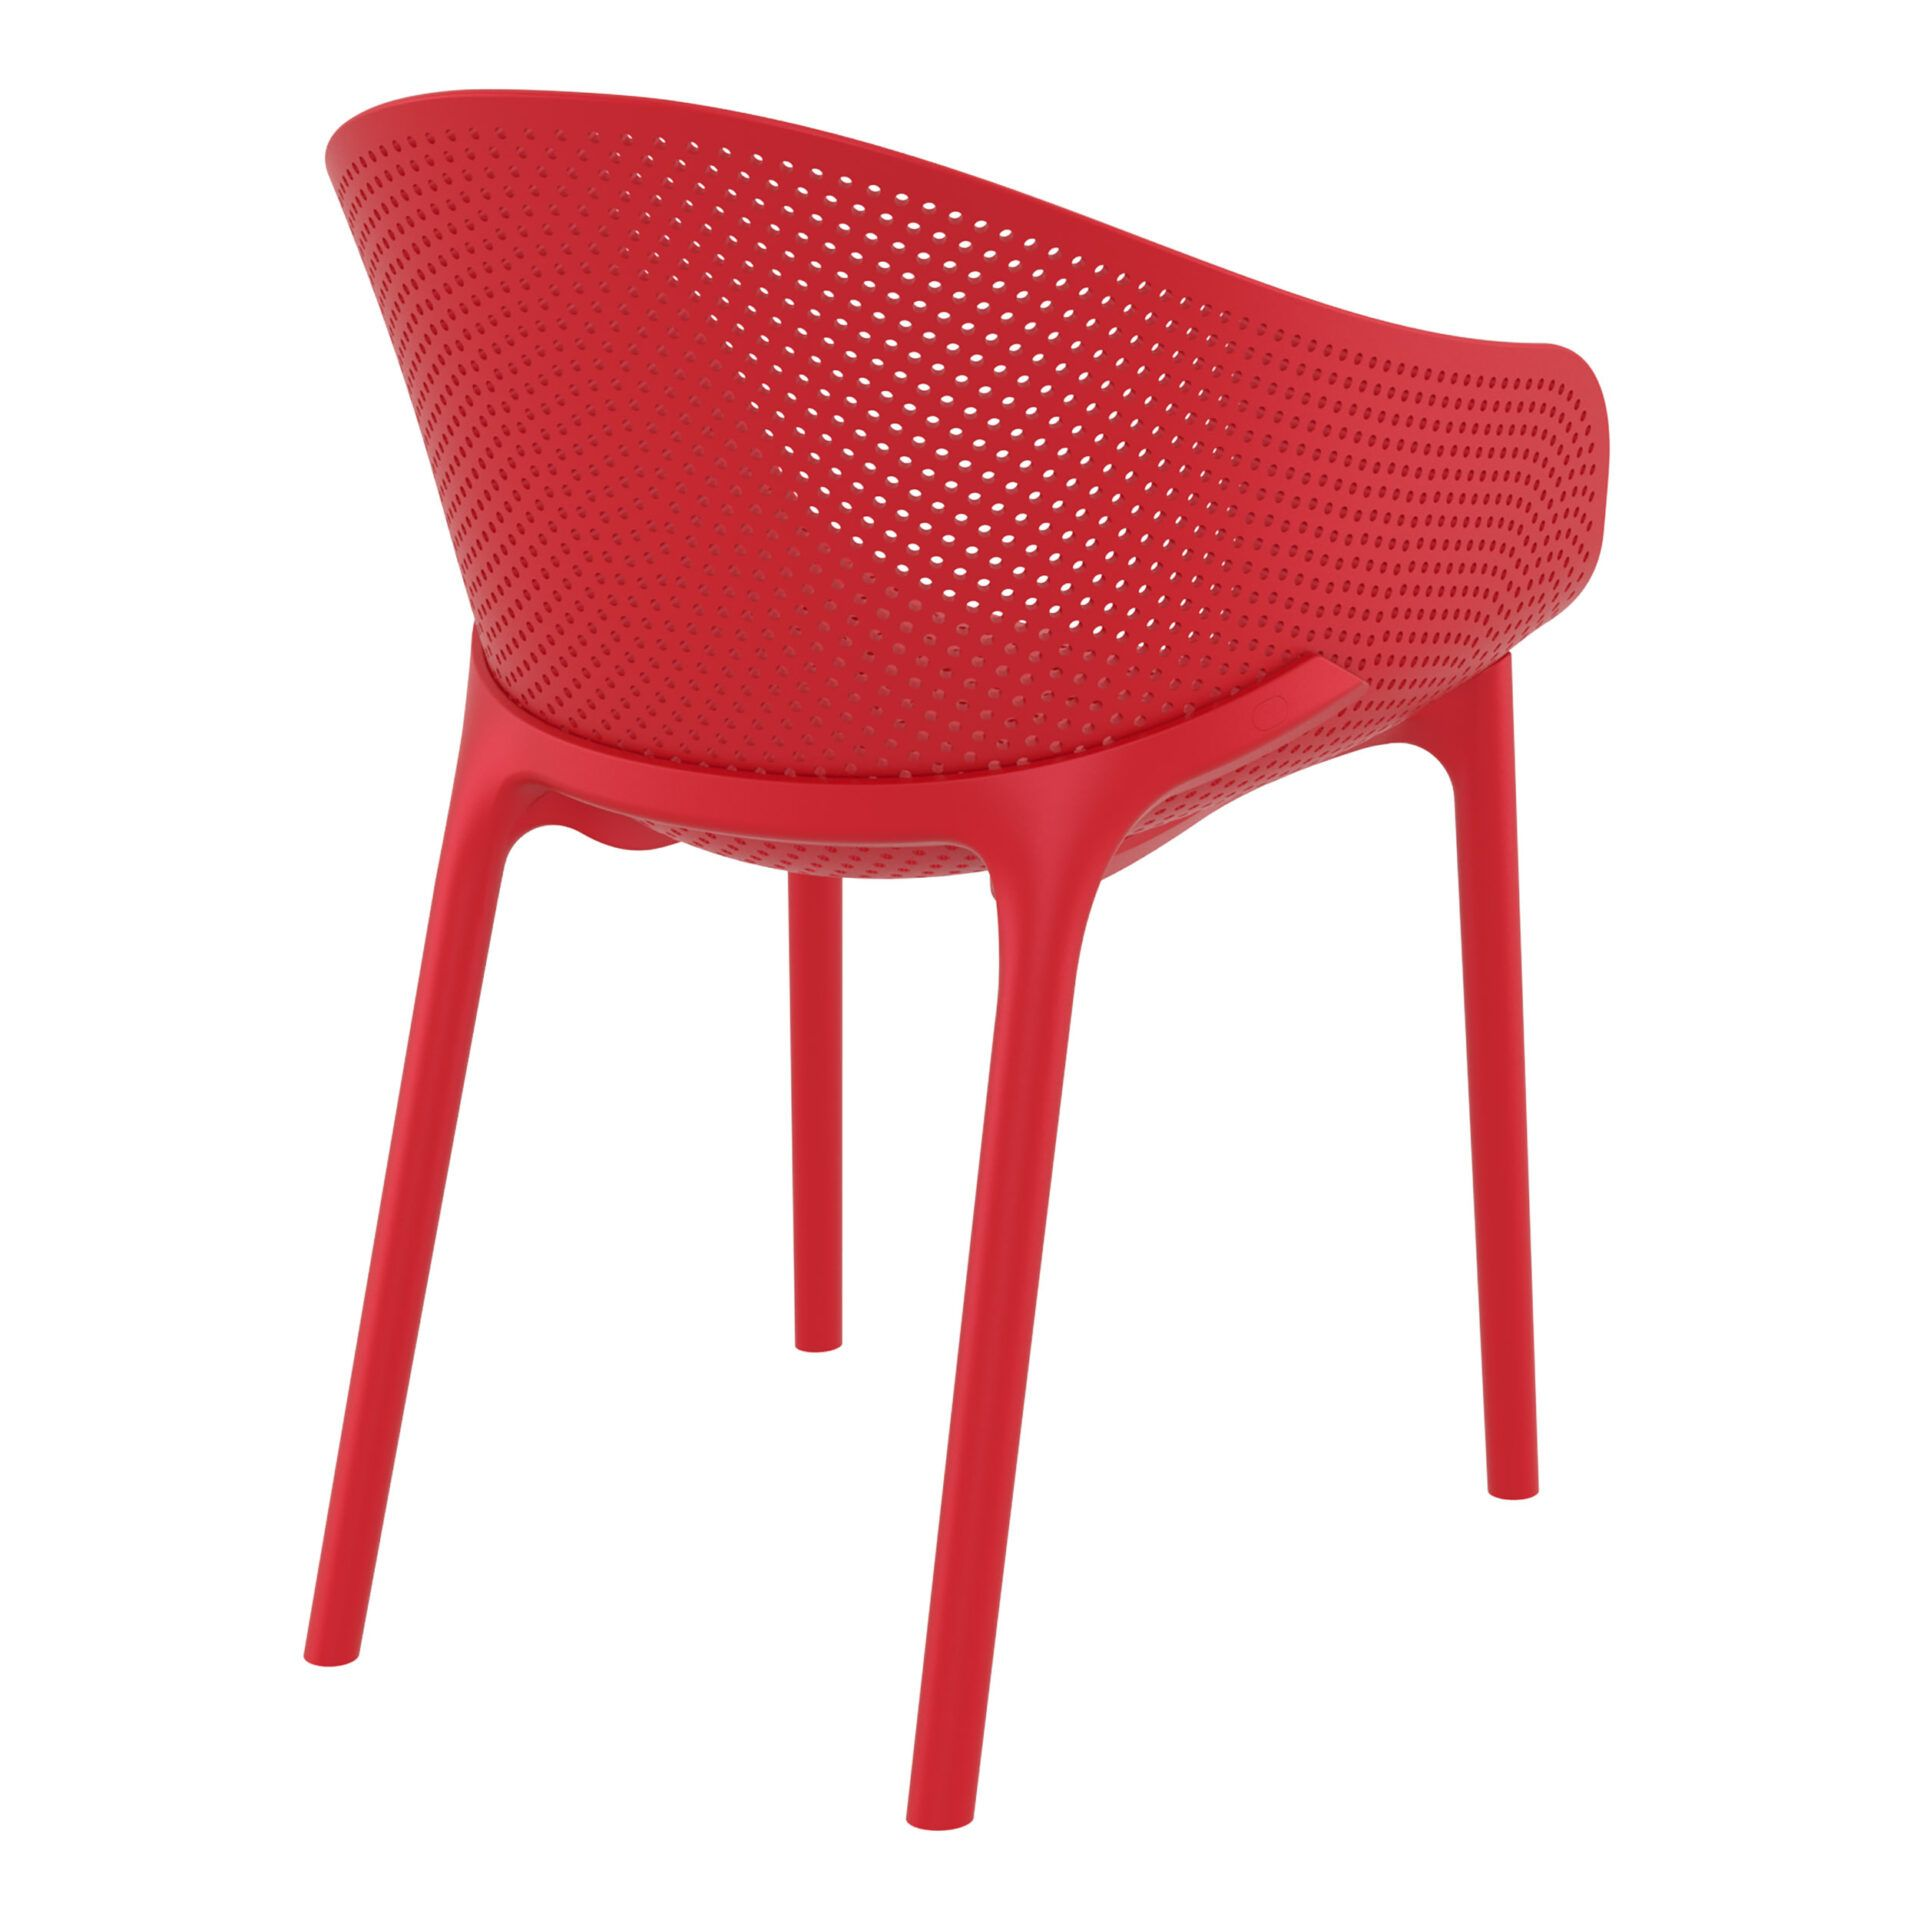 outdoor seating polypropylene sky chair red back side